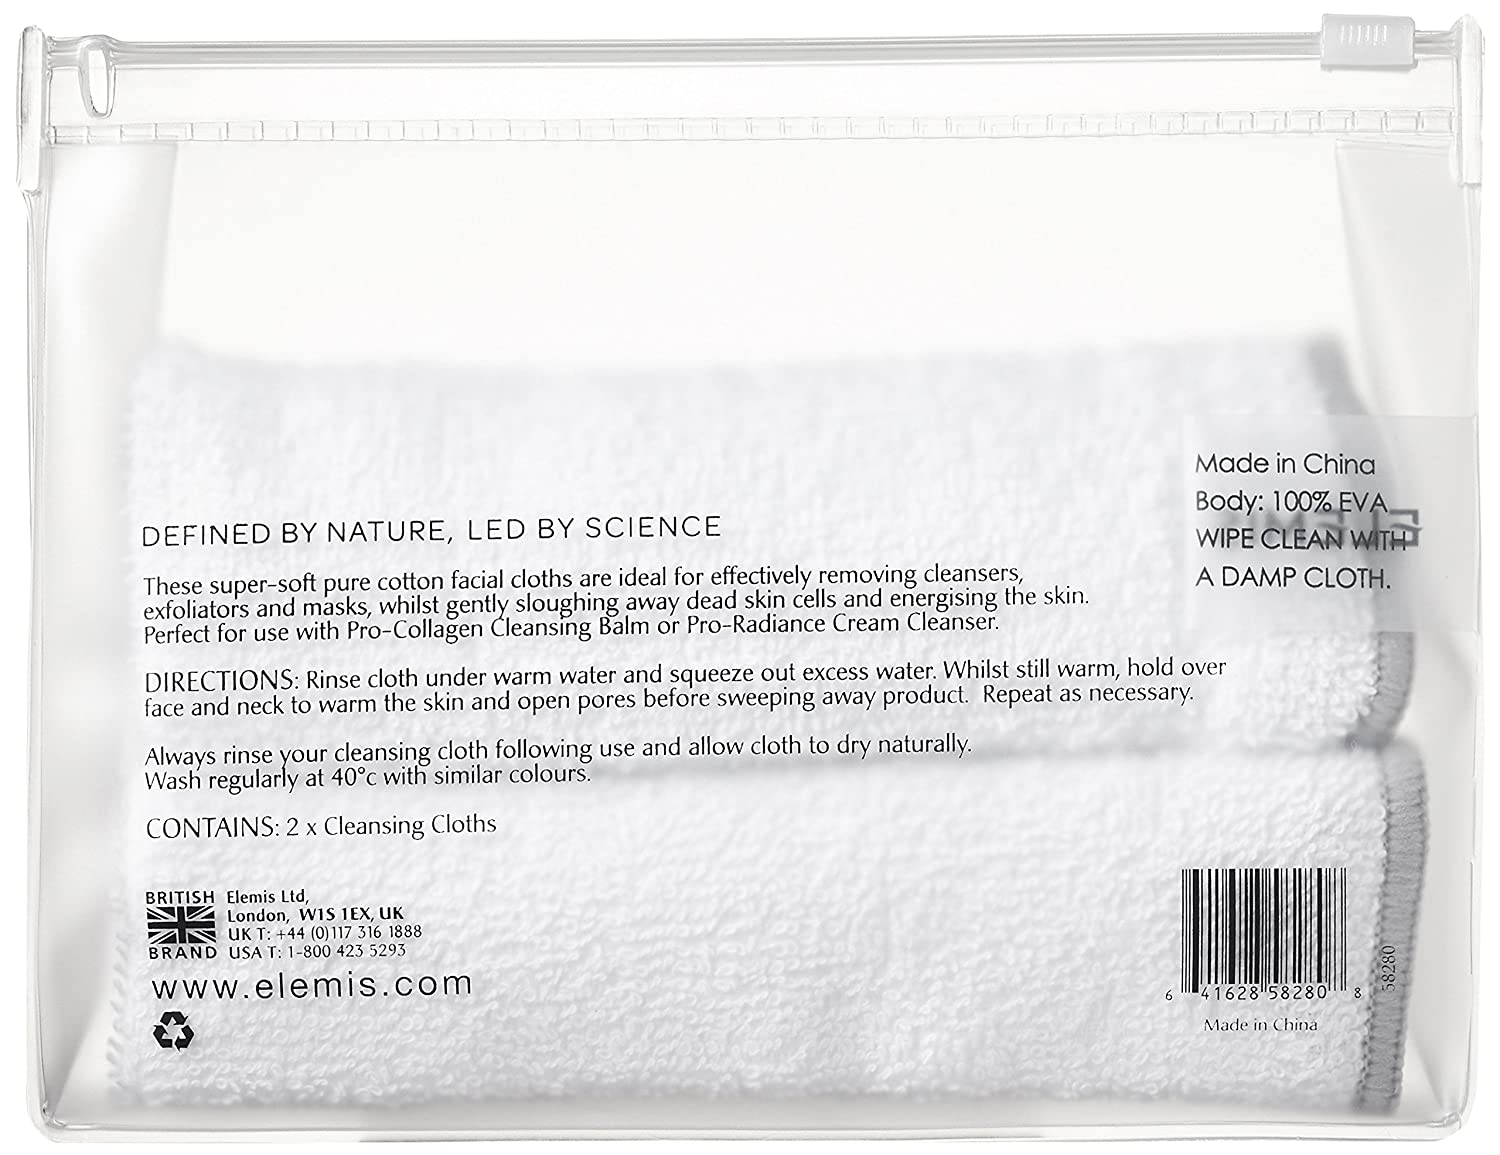 ELEMIS Cleansing Cloth Duo Kit - Pure Cotton Face Cloths 58280